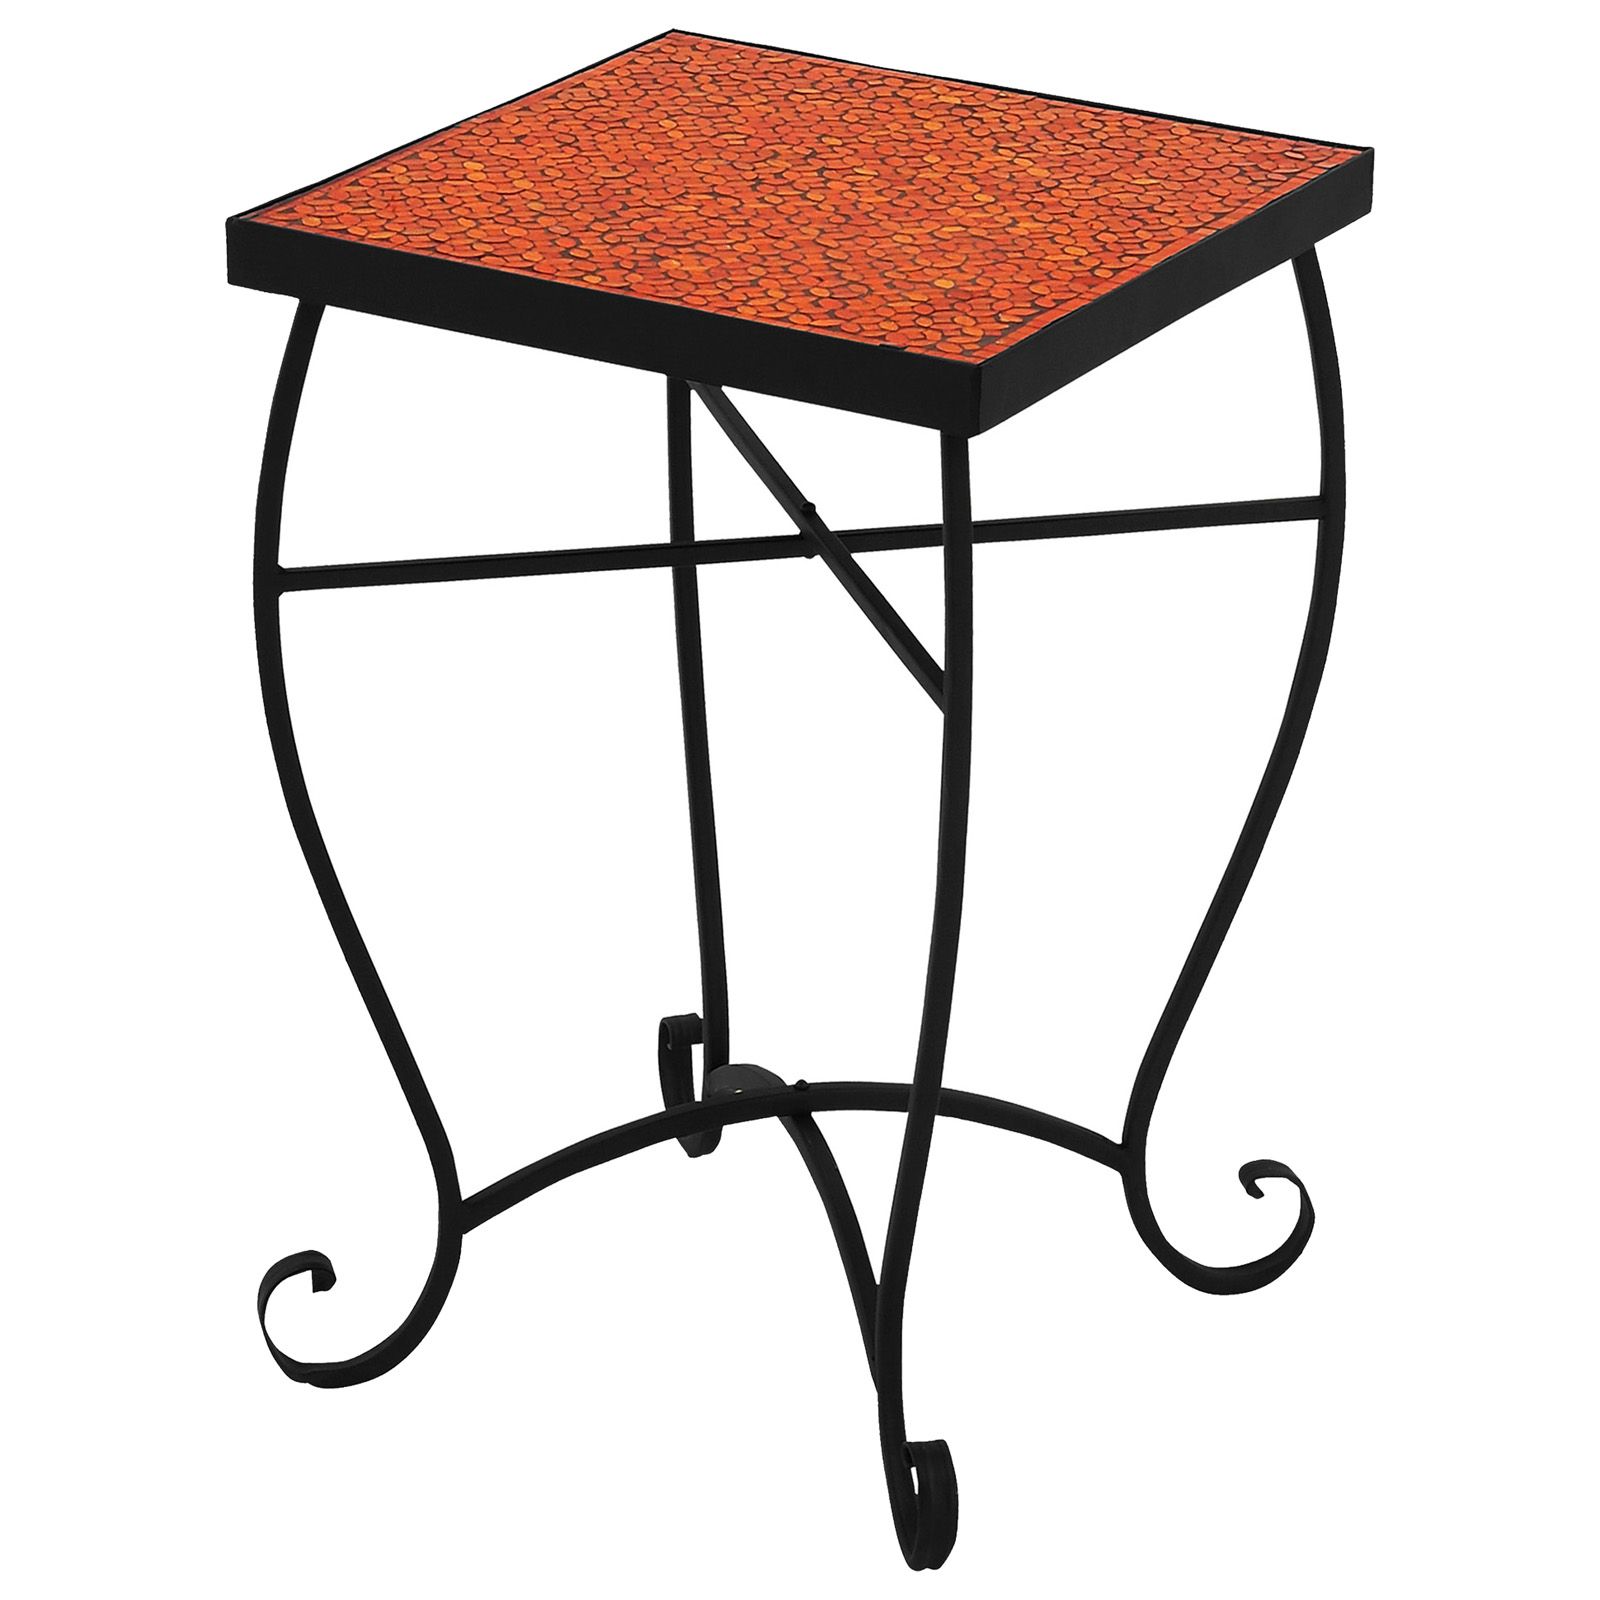 Urban Designs Moroccan Mosaic Fire Orange Square Accent Table